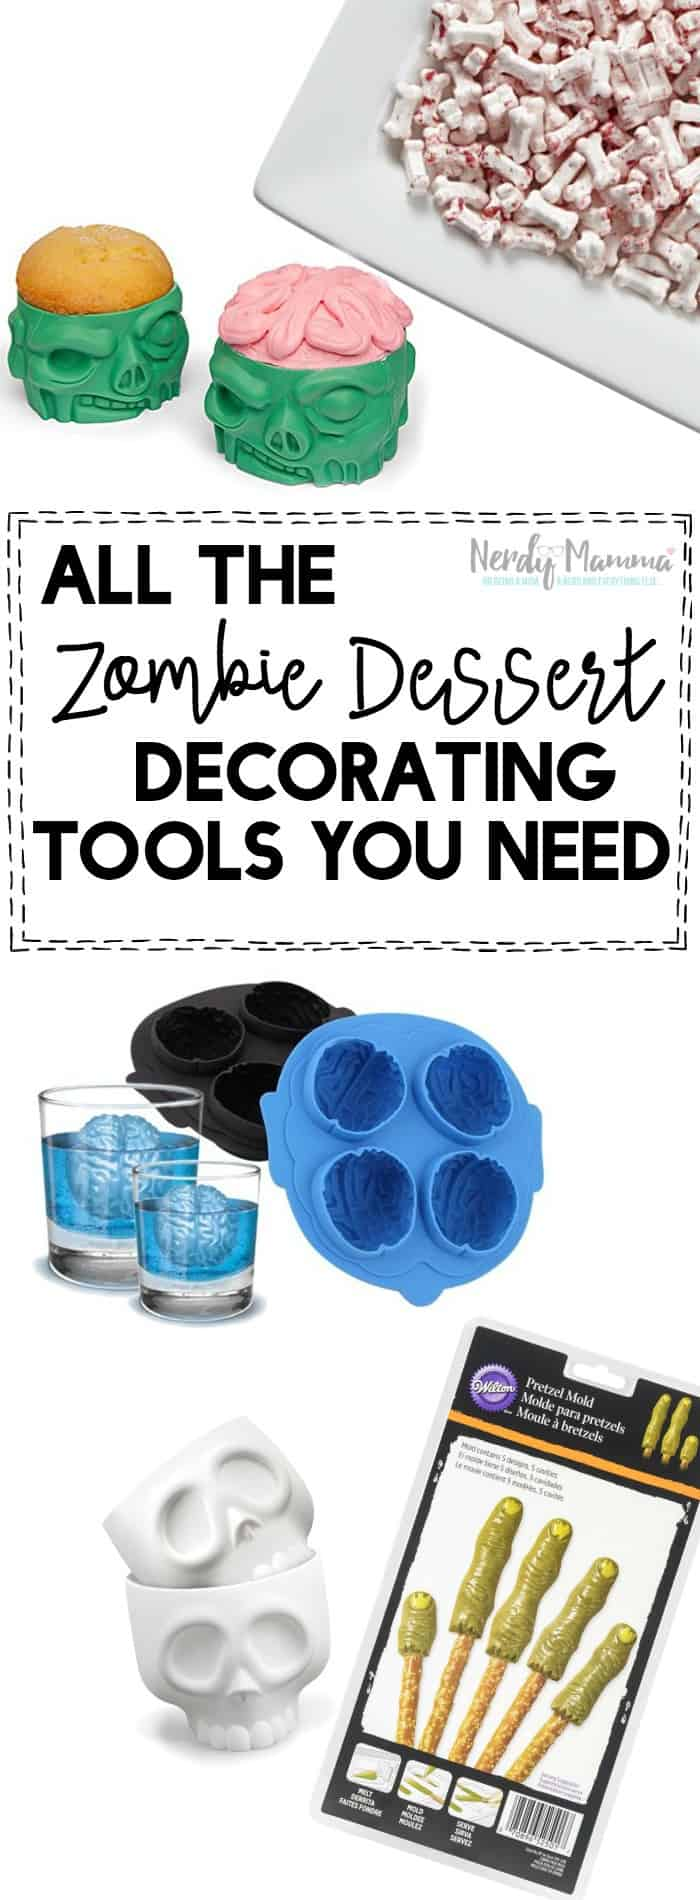 LOL! This is the best. It's all the zombie dessert decorating tools you could ever need. Perfect for Halloween.